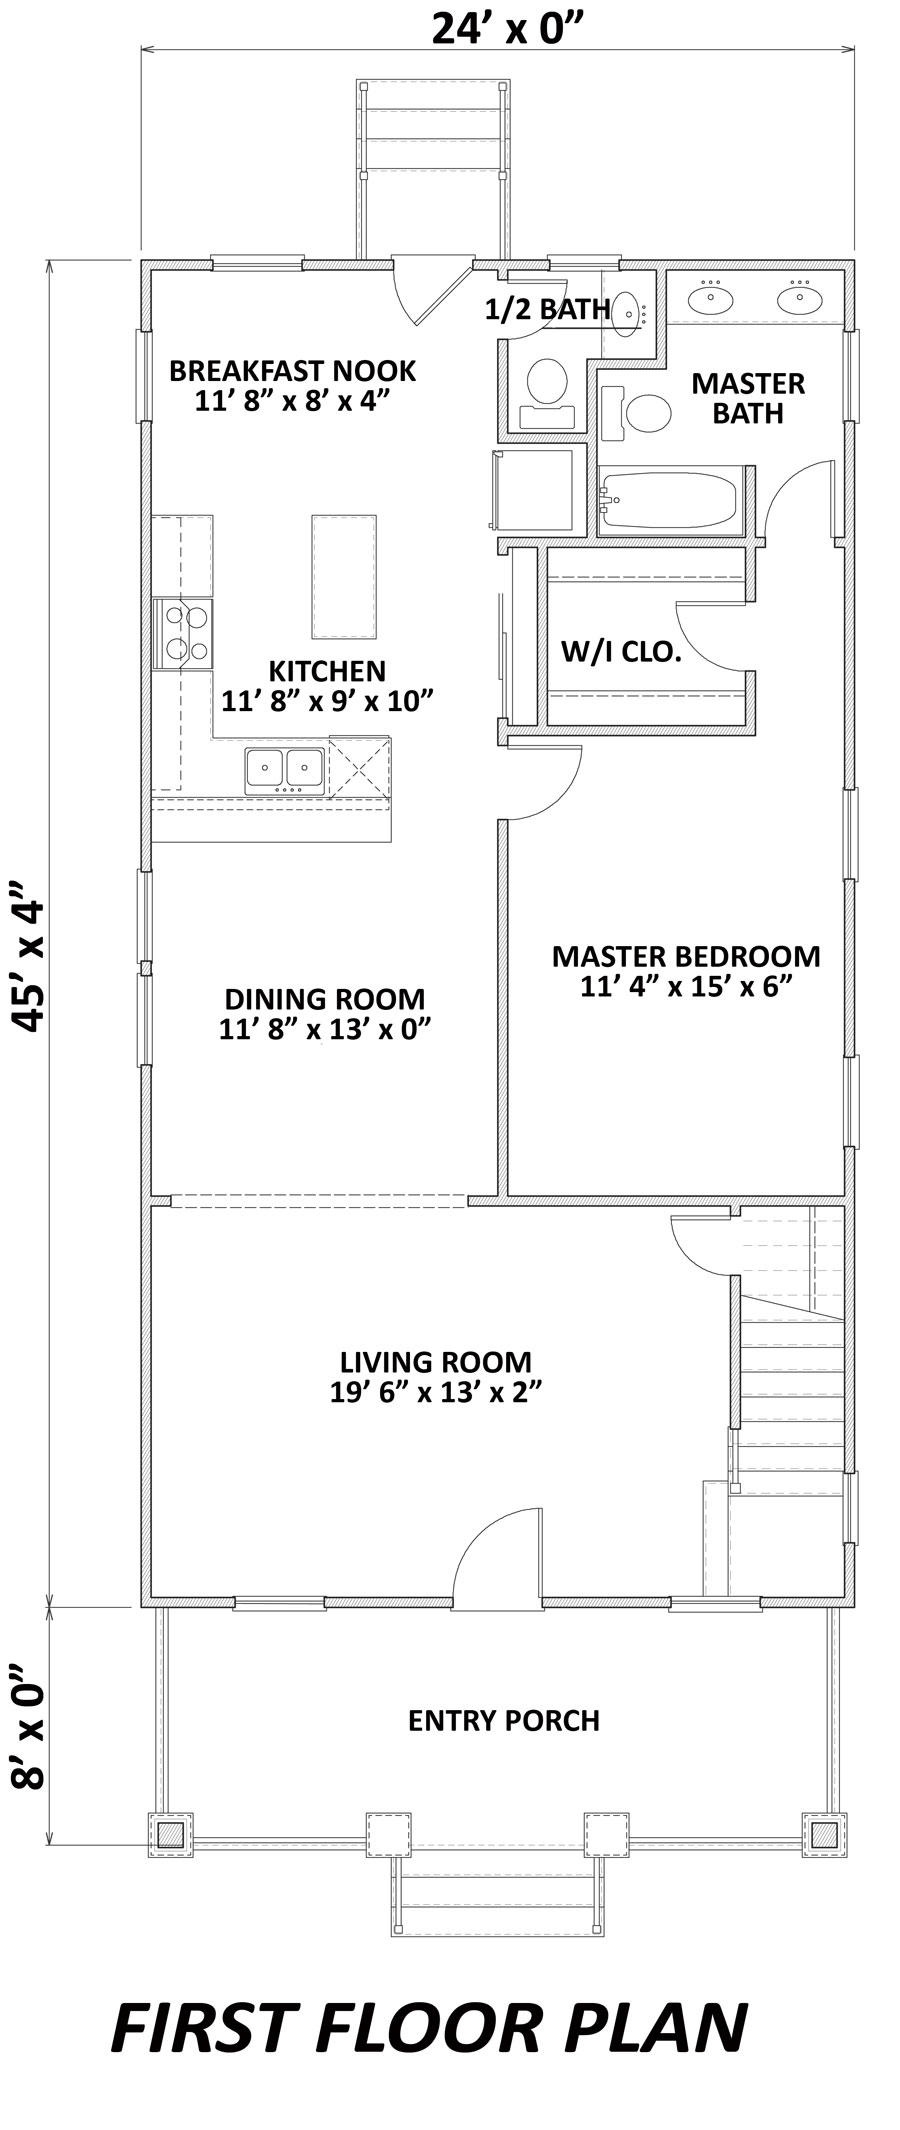 the sears bungalow gmf architects house plans gmf architects